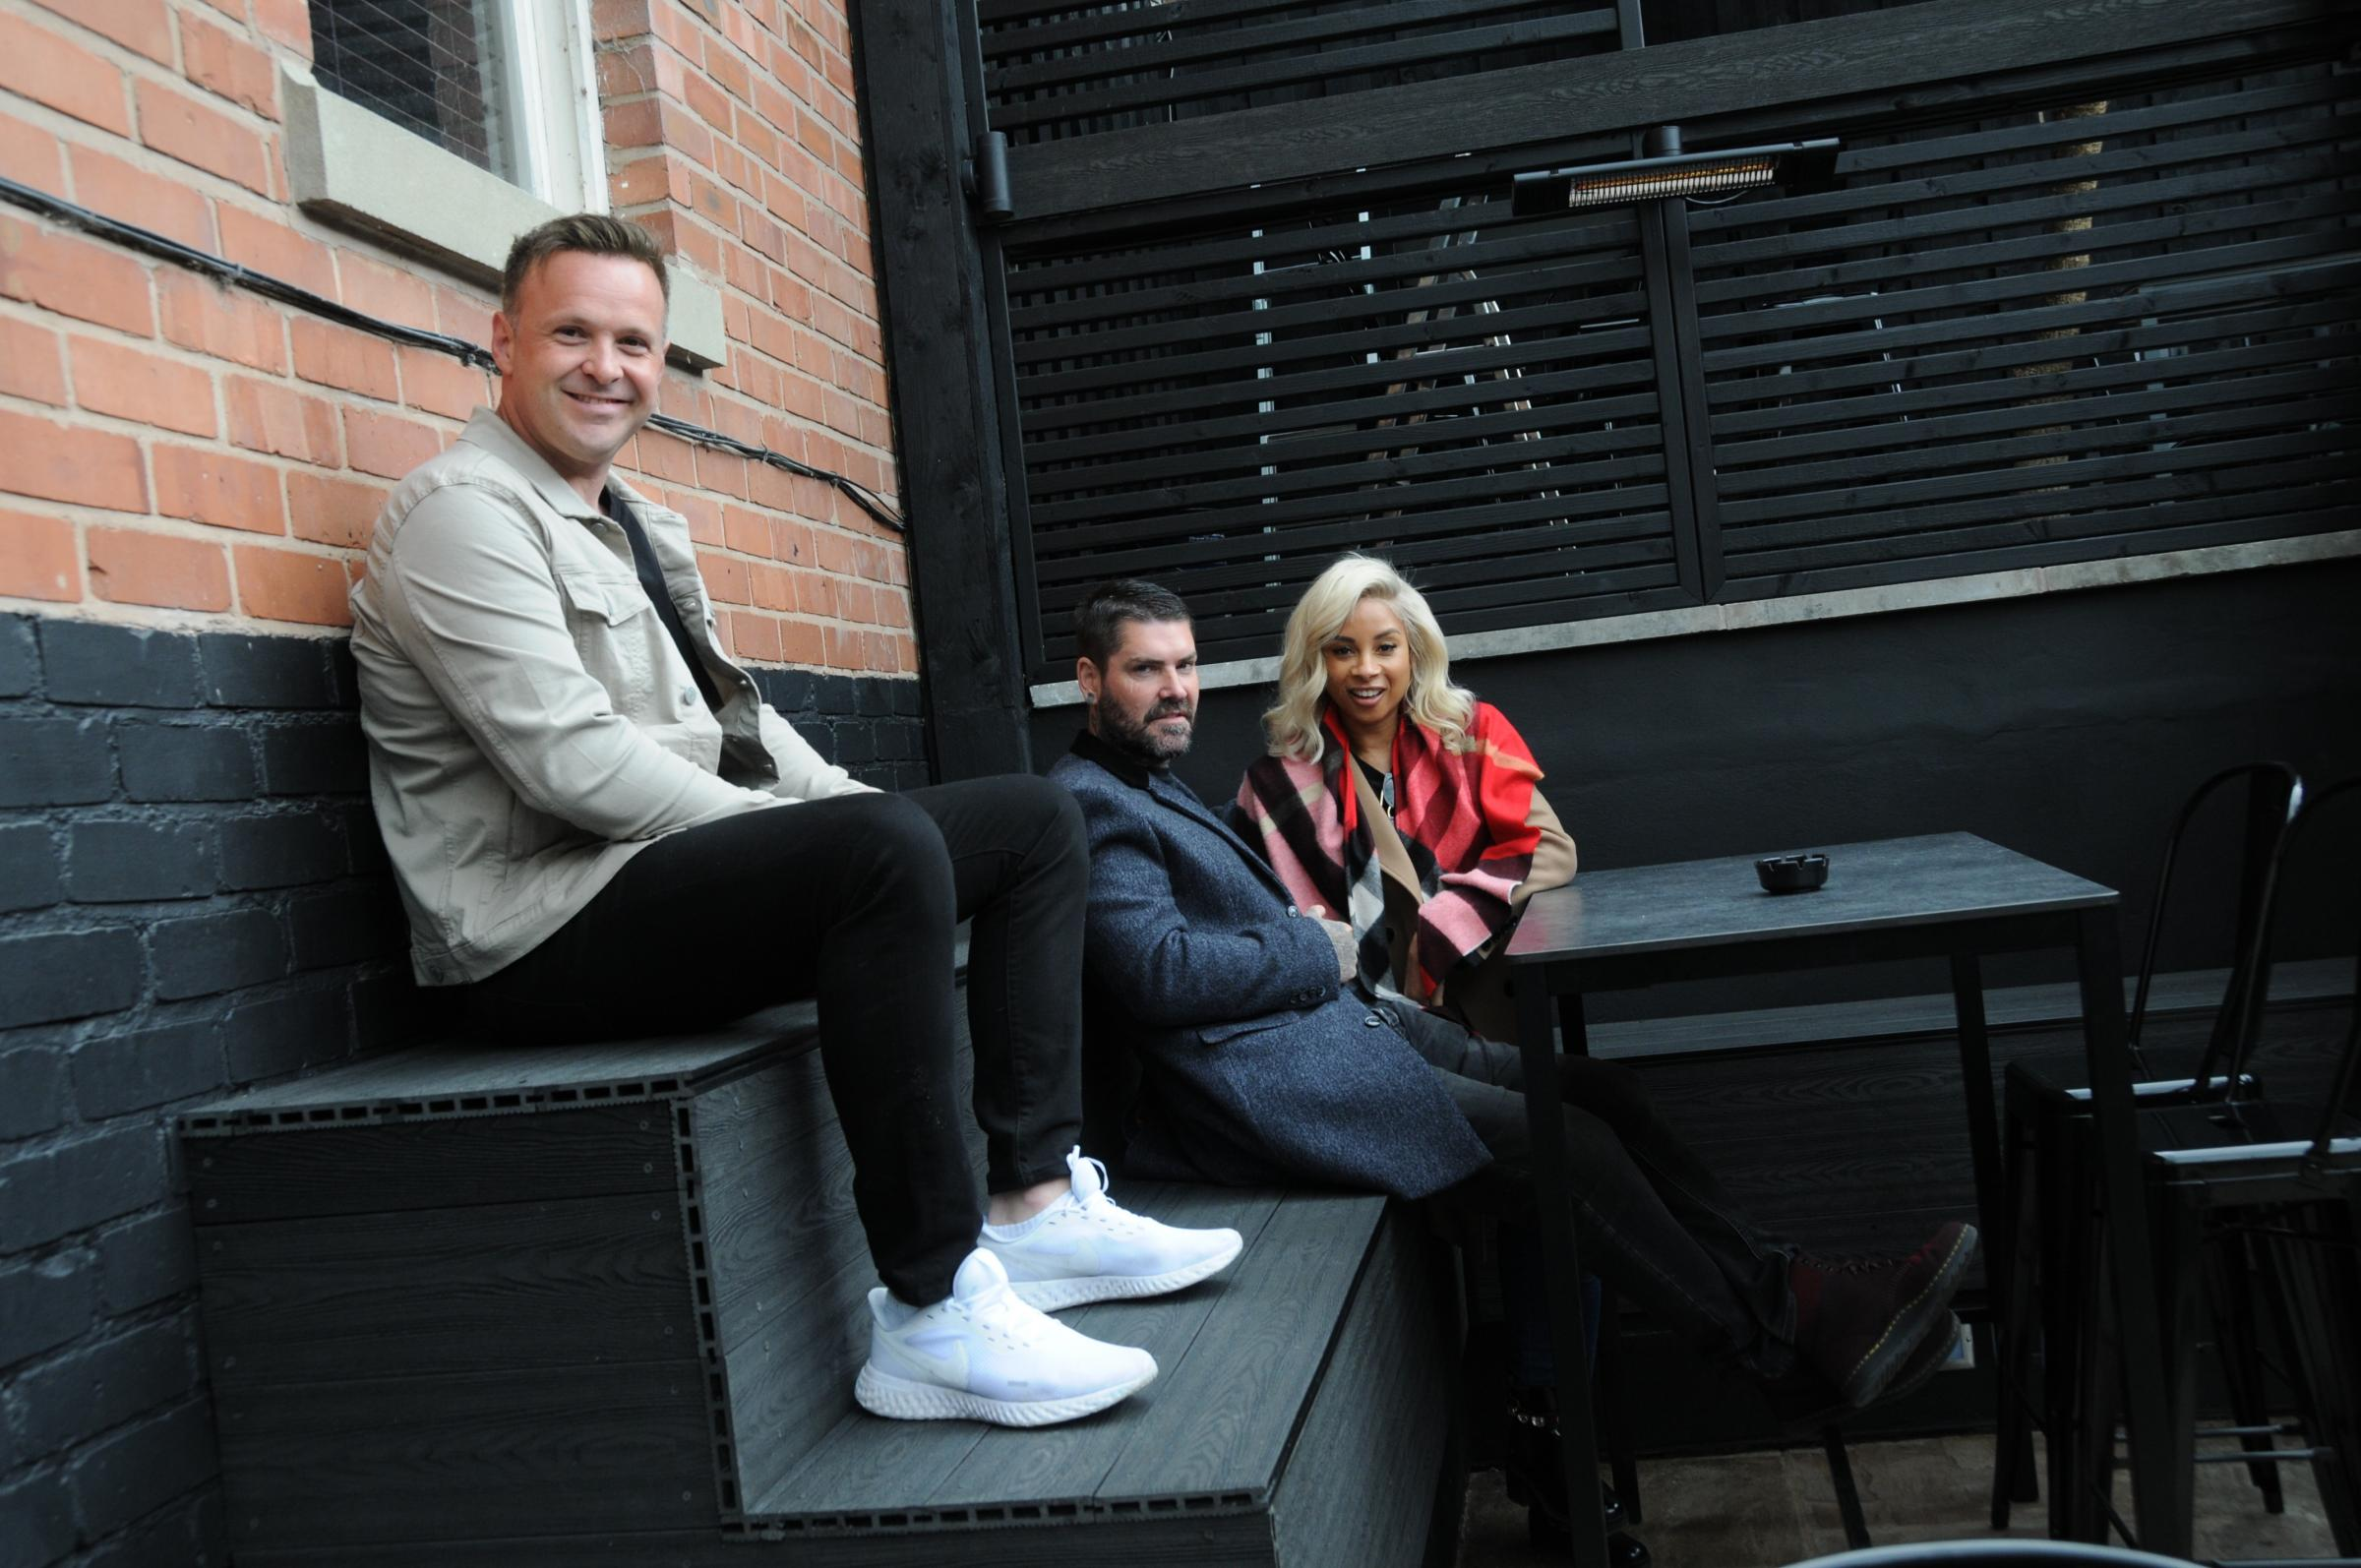 Shane Lynch has opened a bar with his wife Sheena and business partner Nathan Gerhold